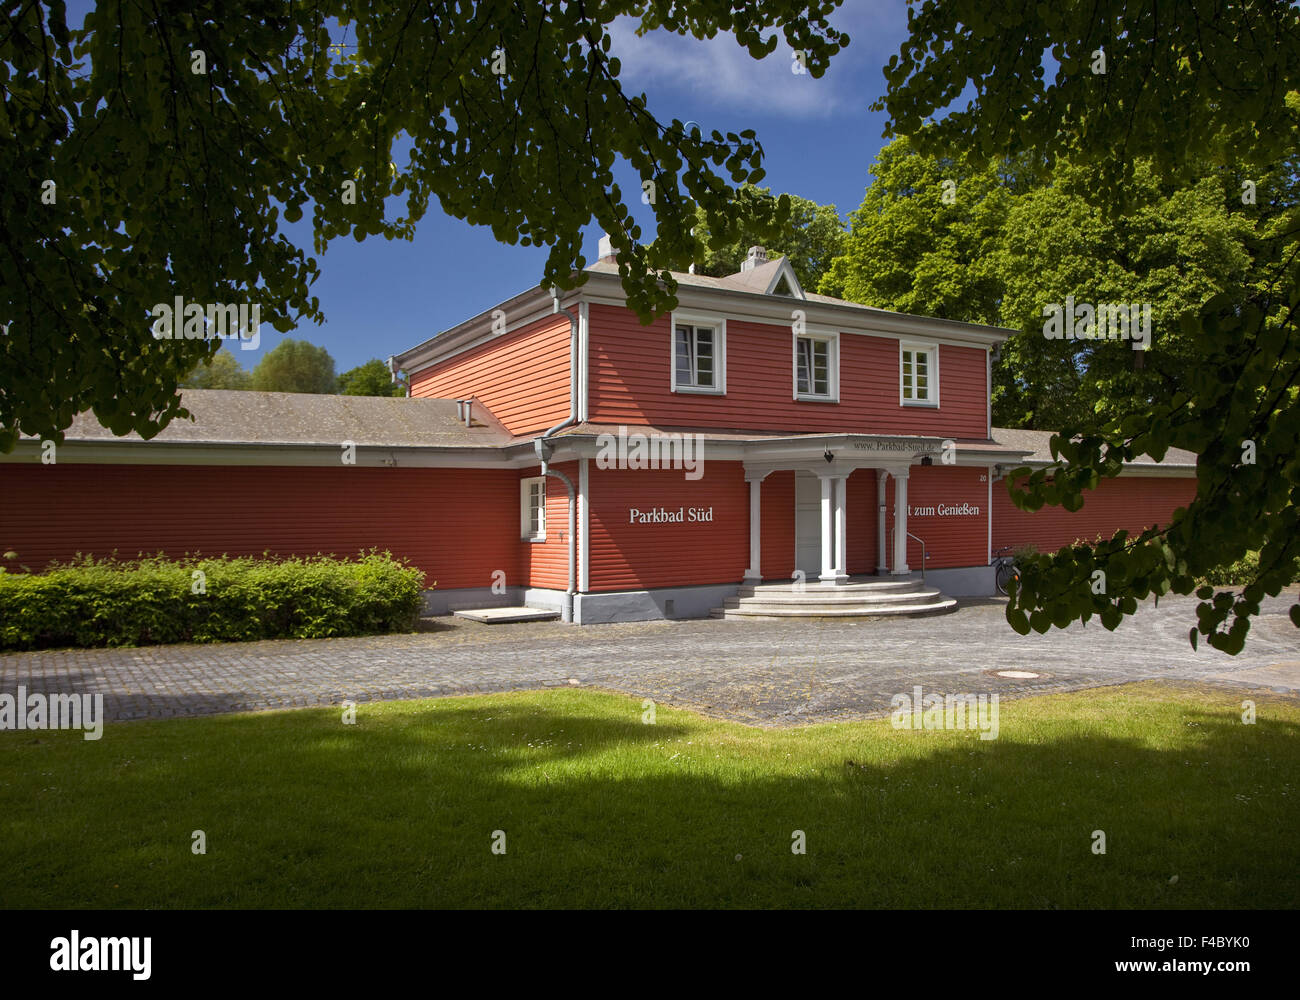 Parkbad South, Castrop-Rauxel, Germany - Stock Image